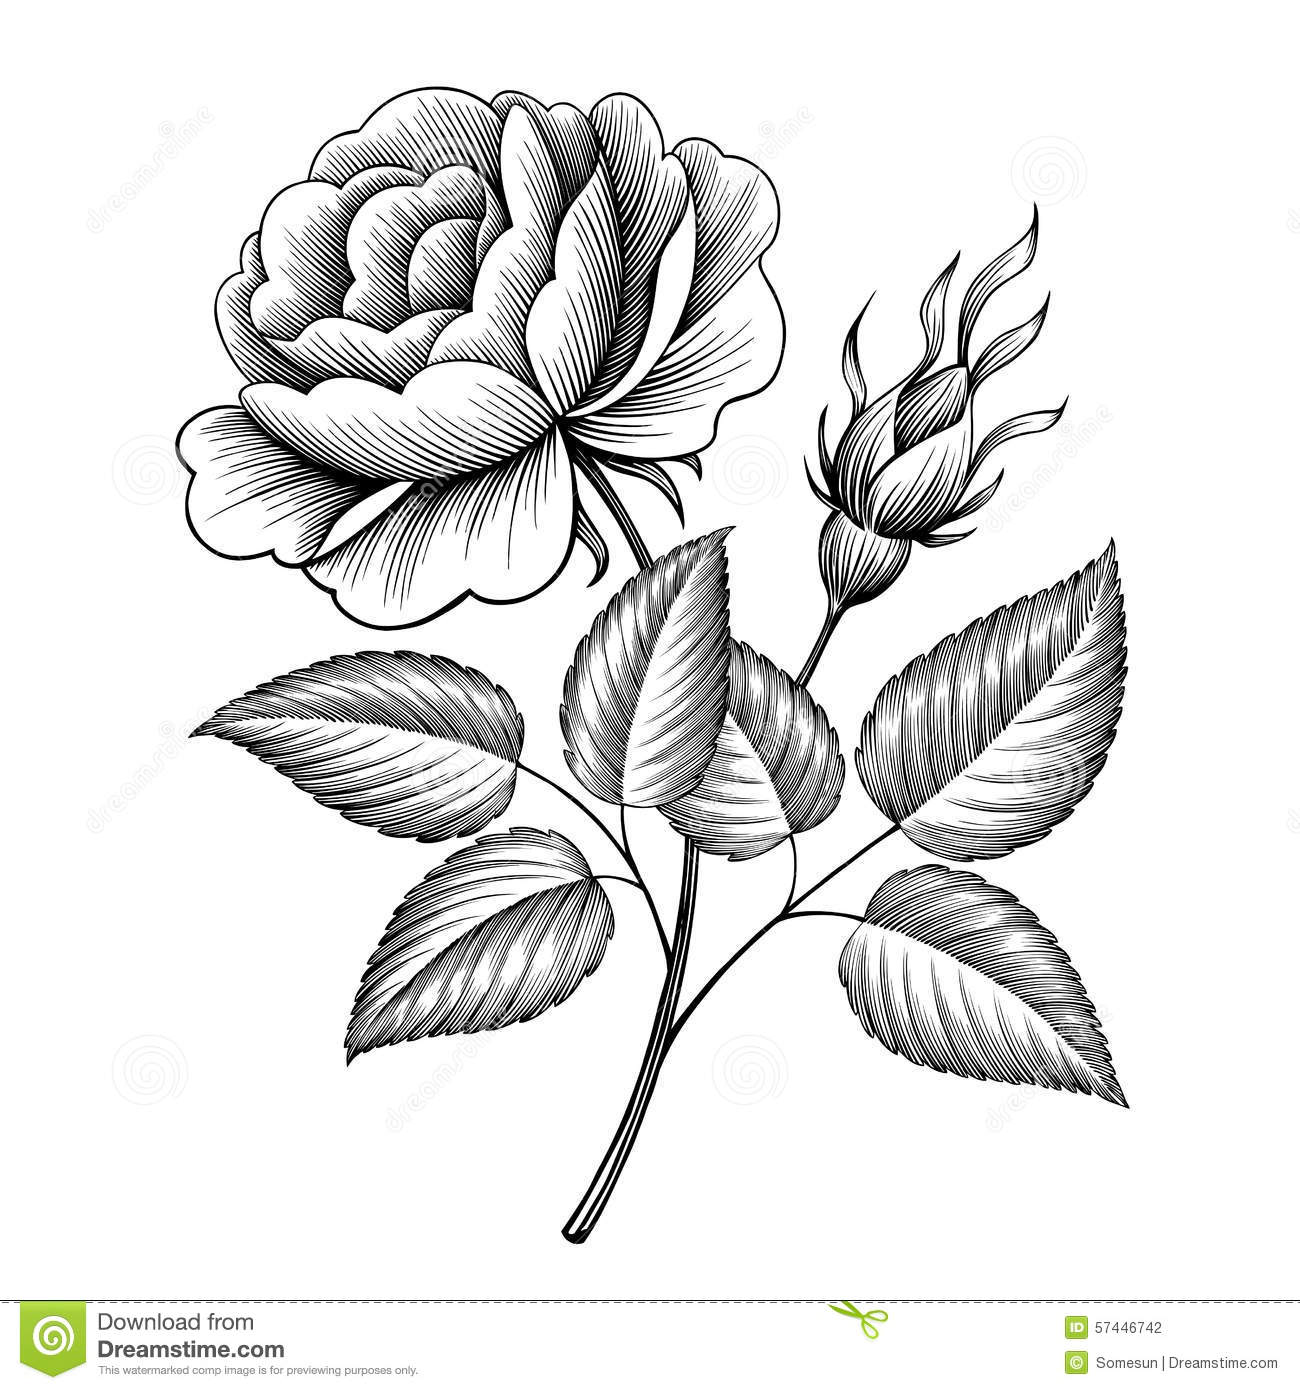 Black and white floral wreath stock vector image 65241515 - Vintage Rose Flower Engraving Calligraphic Vector Stock Photography